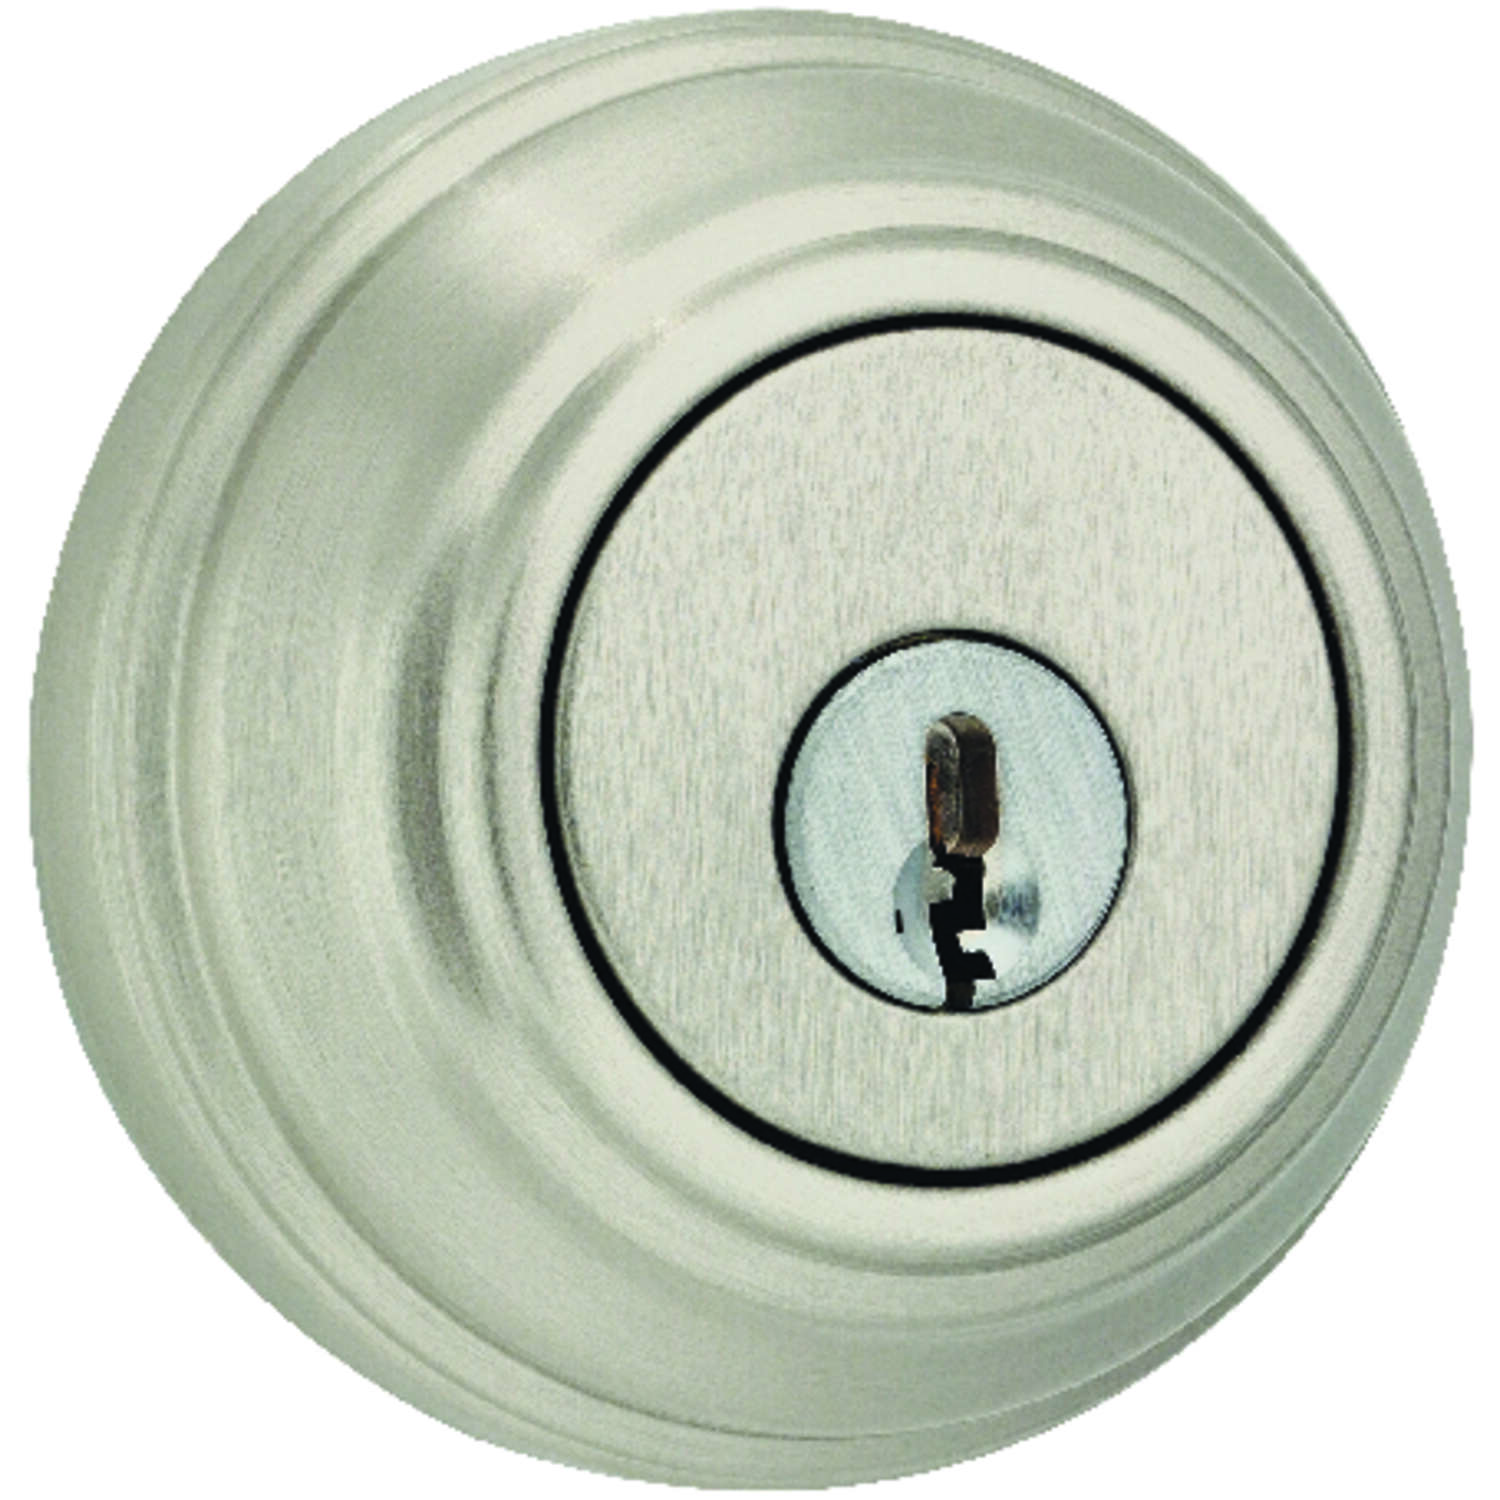 Weiser Satin Nickel Metal Single Cylinder Smart Key Deadbolt Ace Hardware